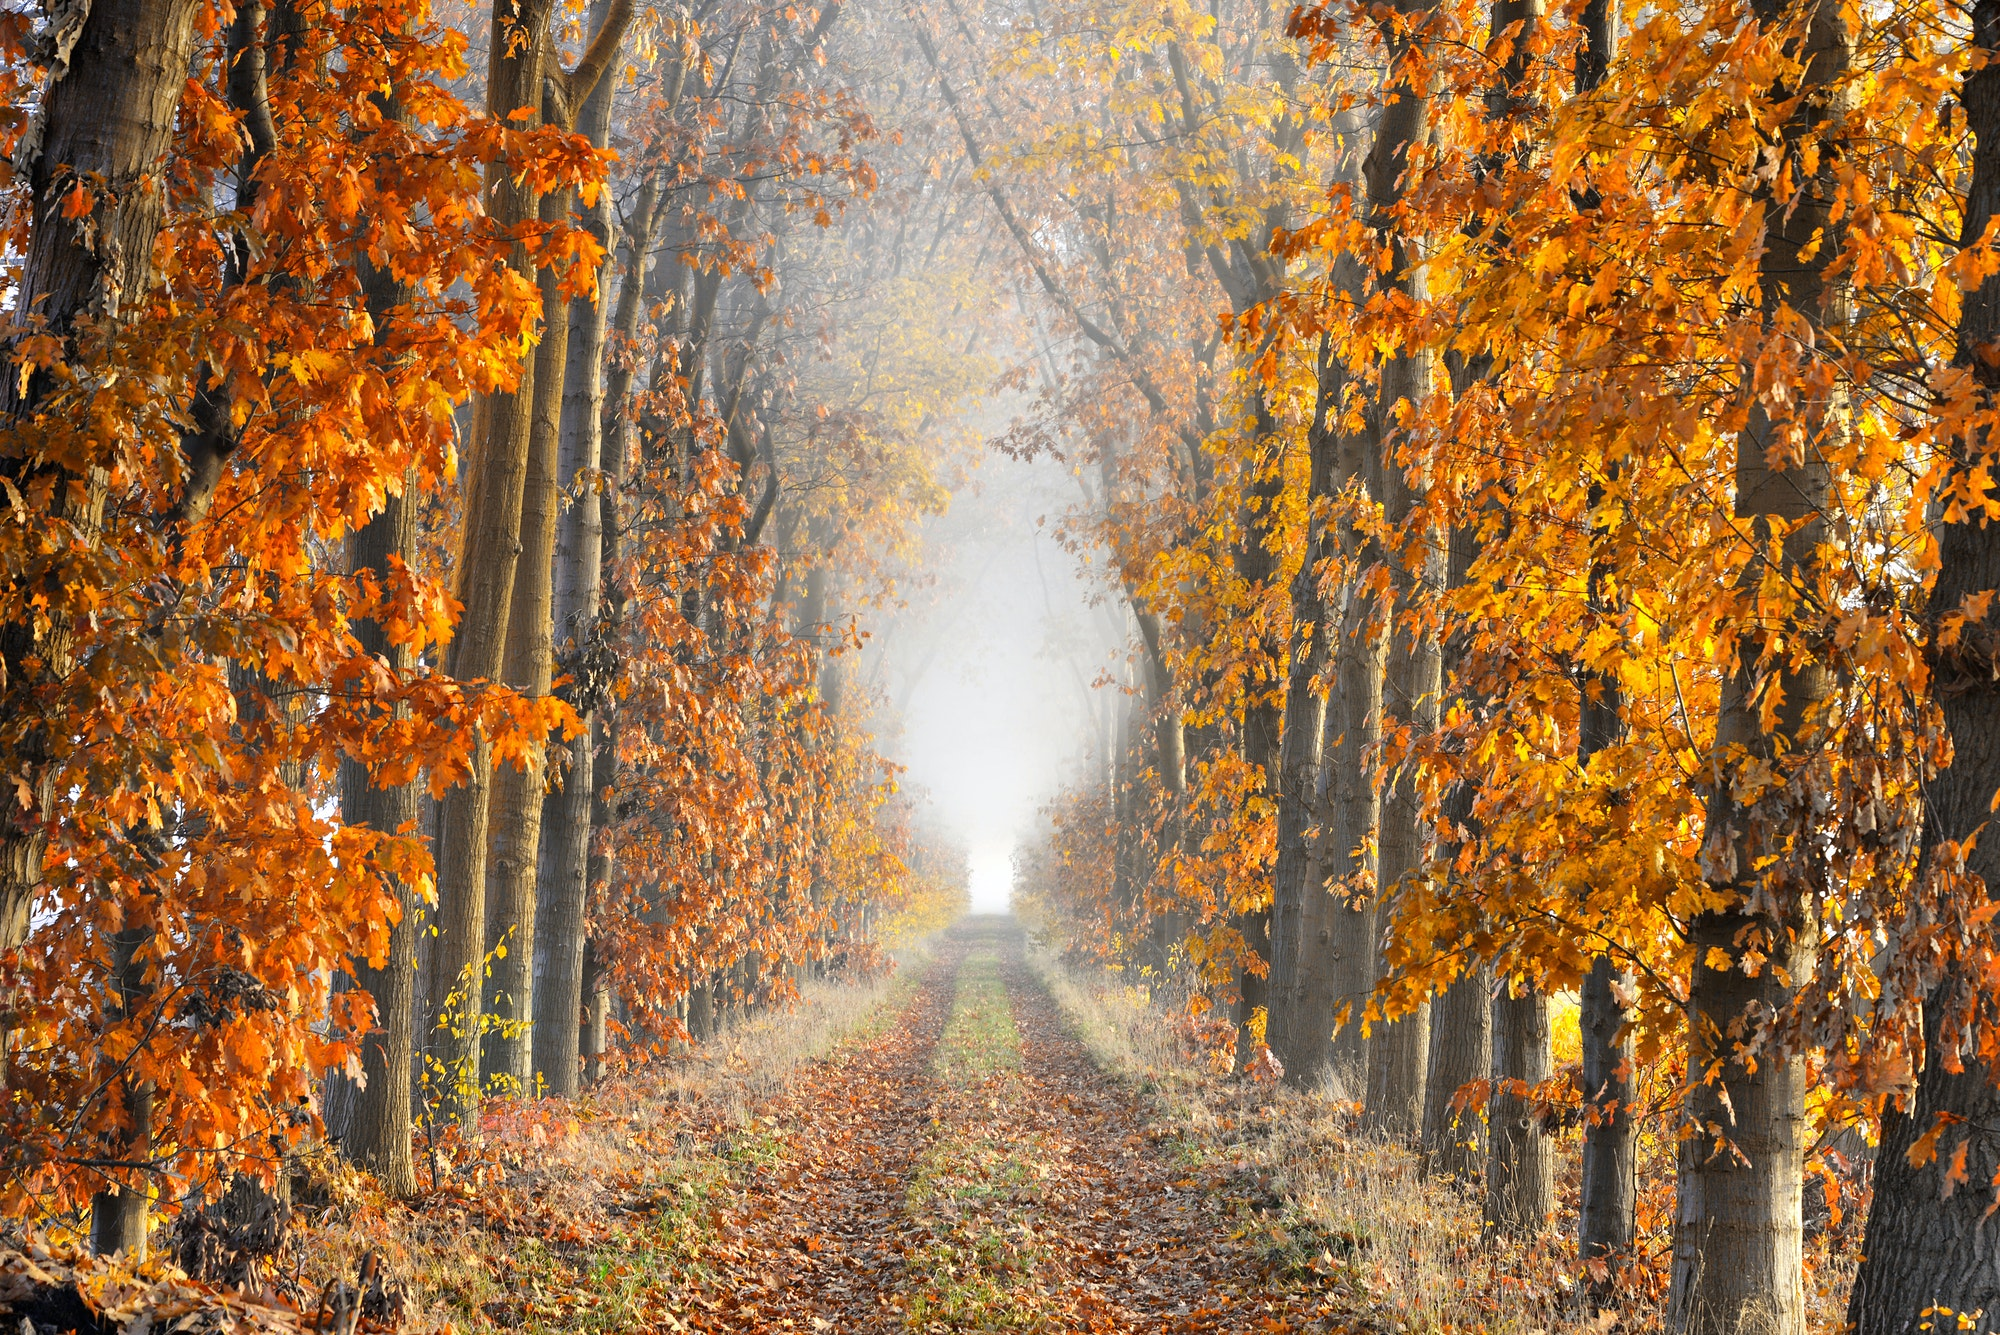 Diminishing perspective in a lane in autumn